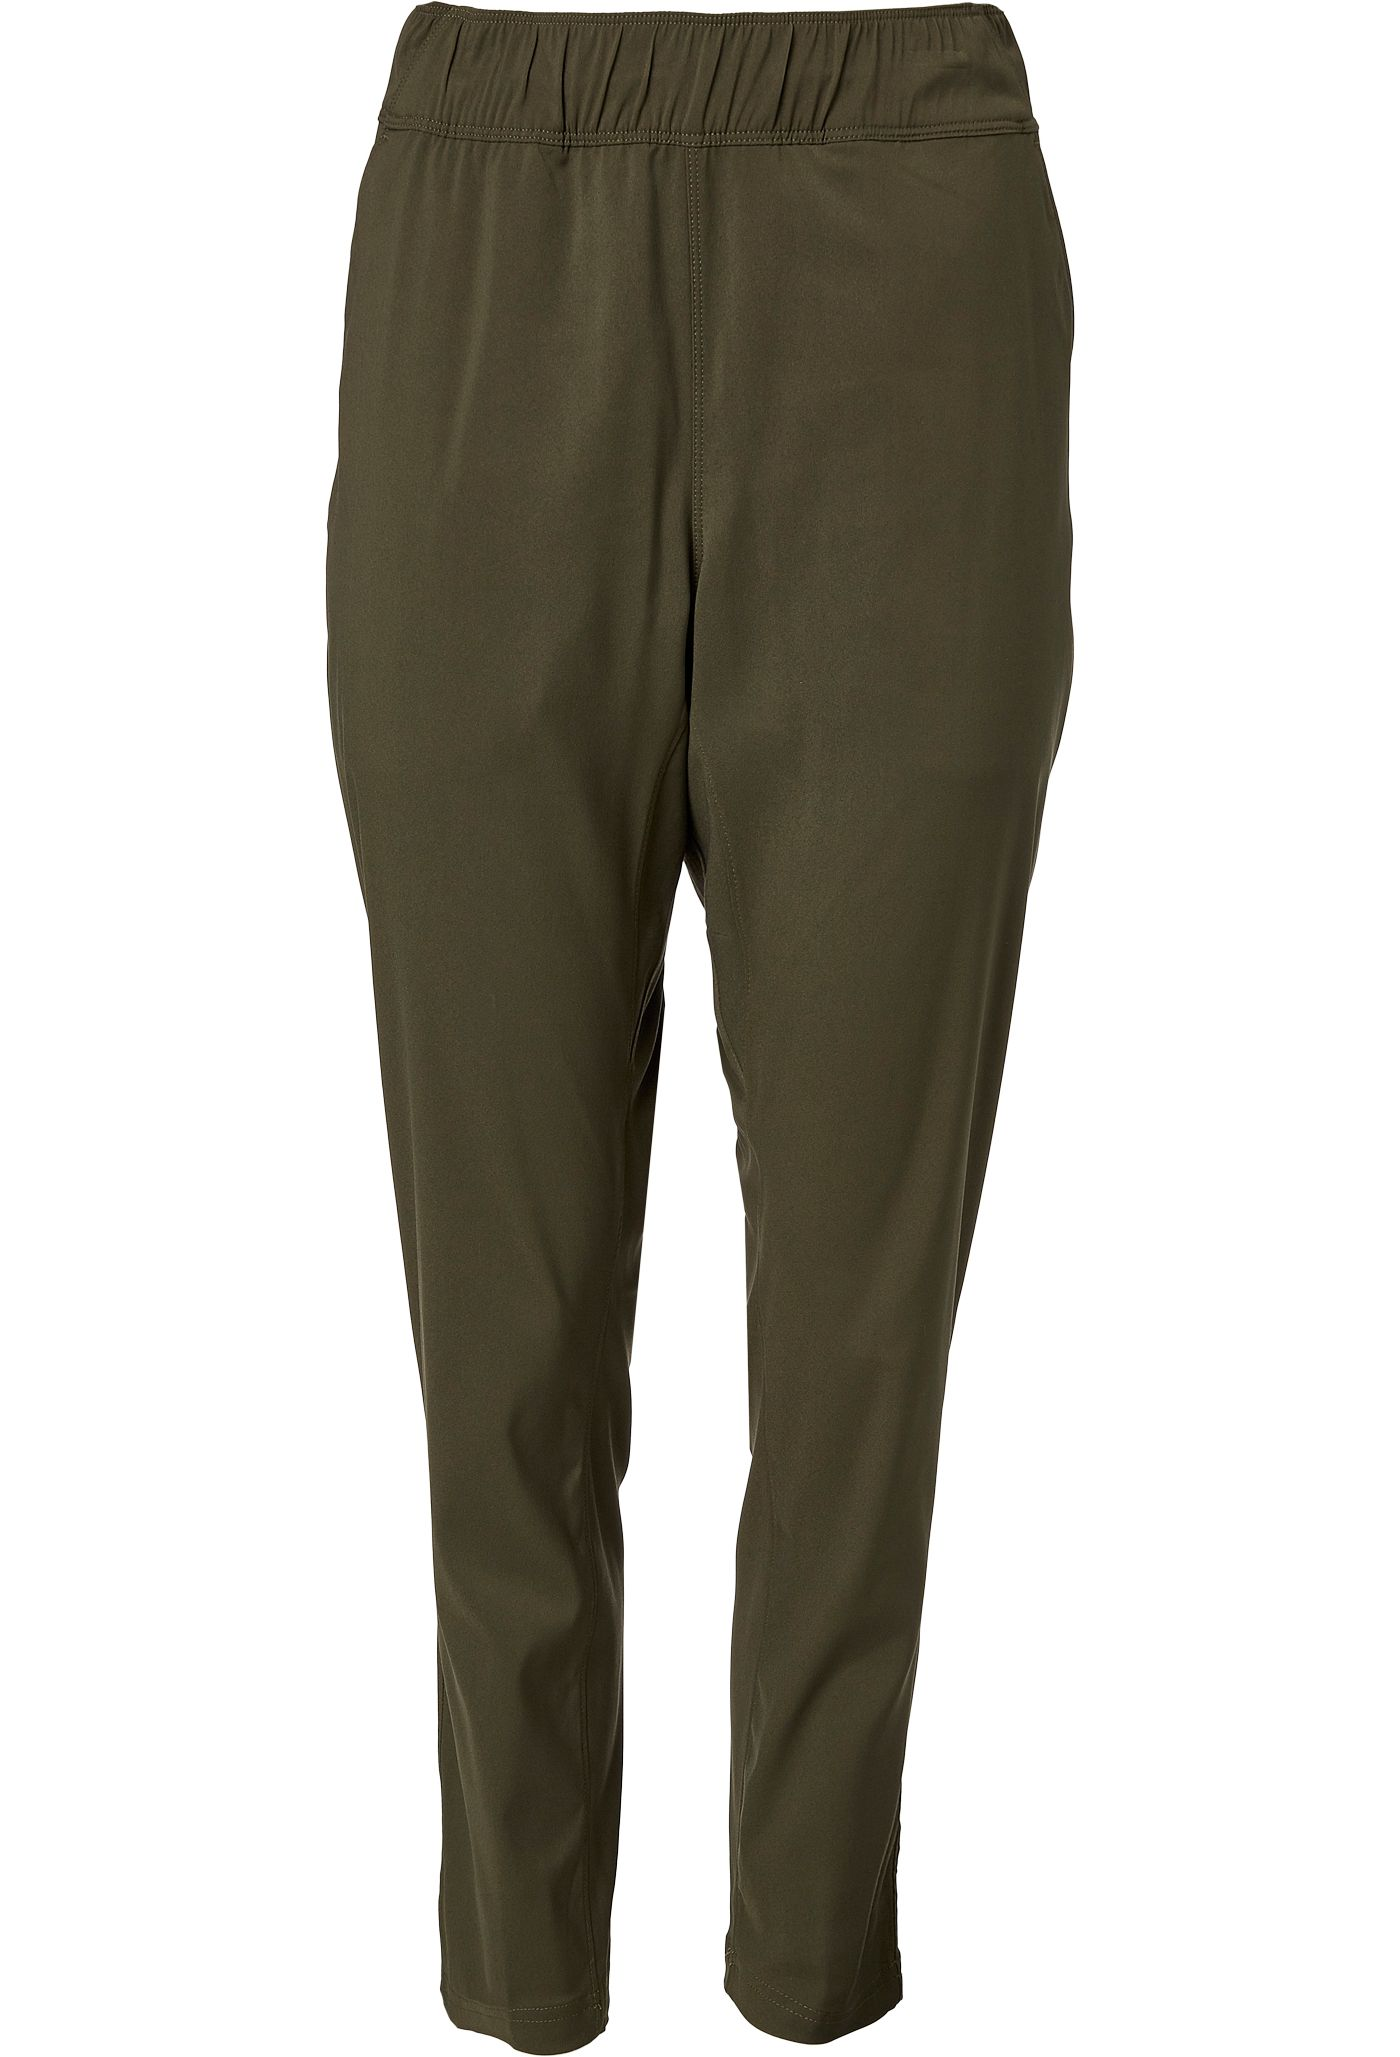 The North Face Women's Cordelette II Pants